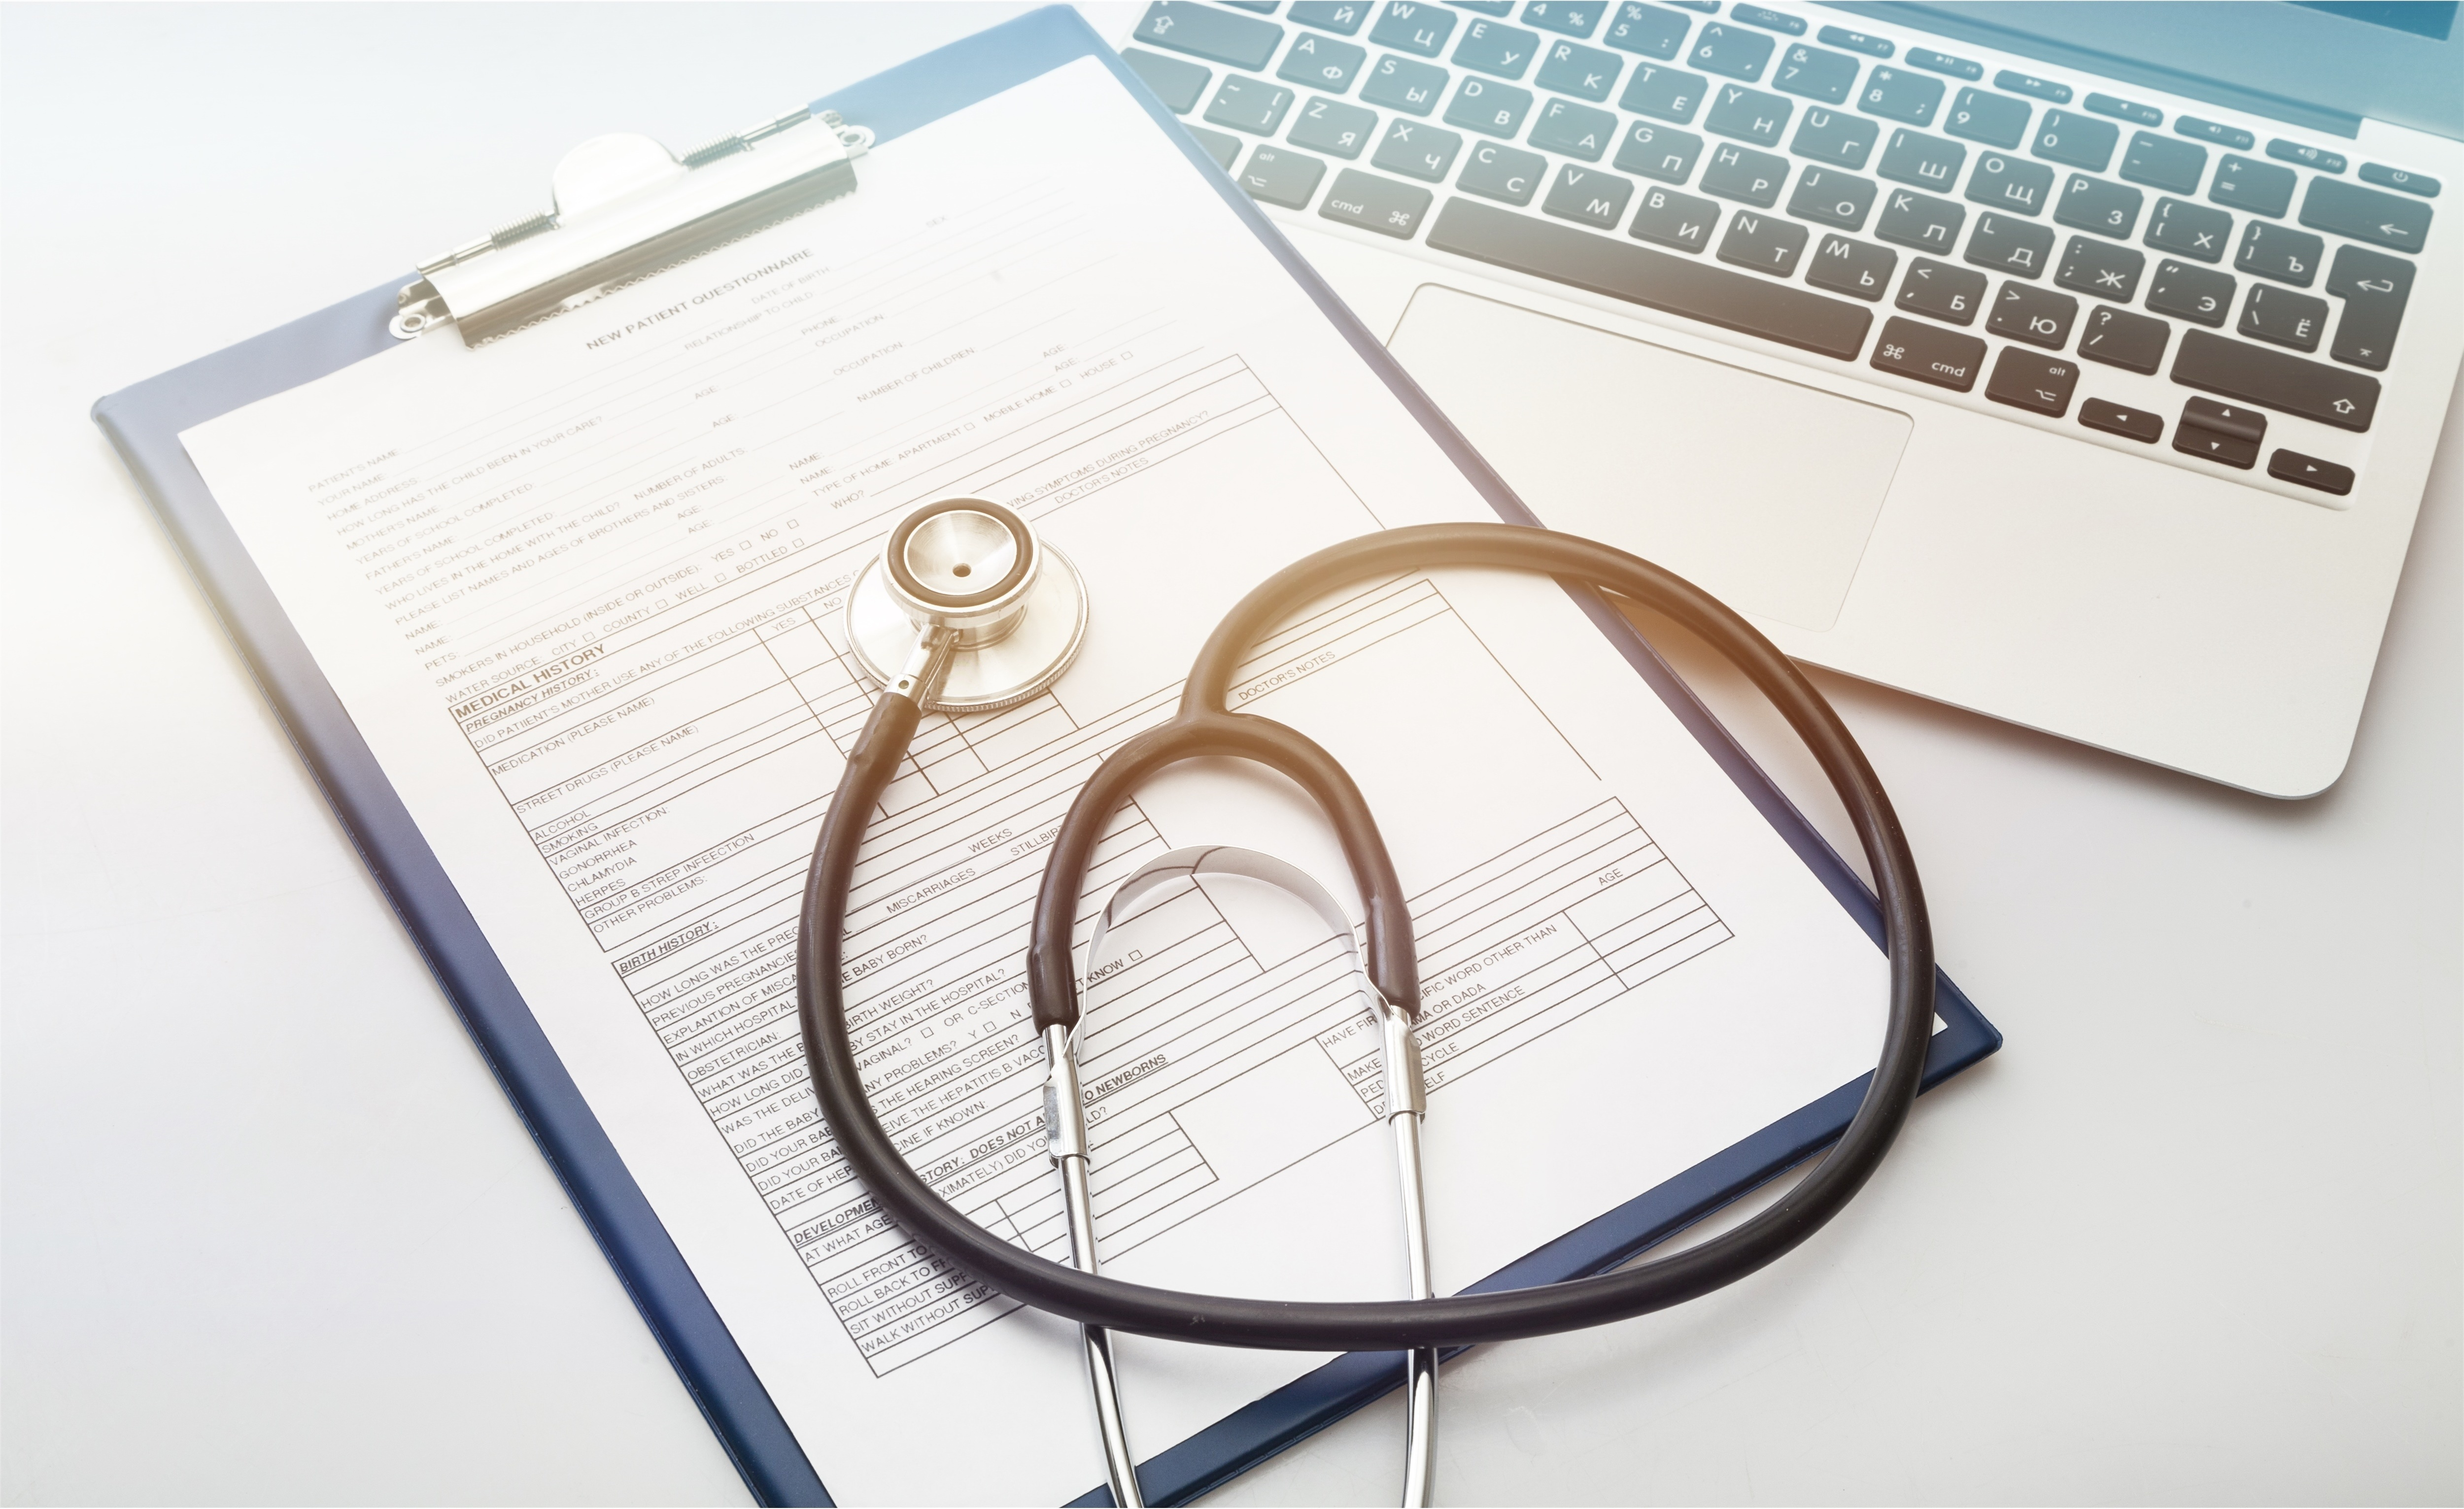 Modern laptop and stethoscope on wooden background